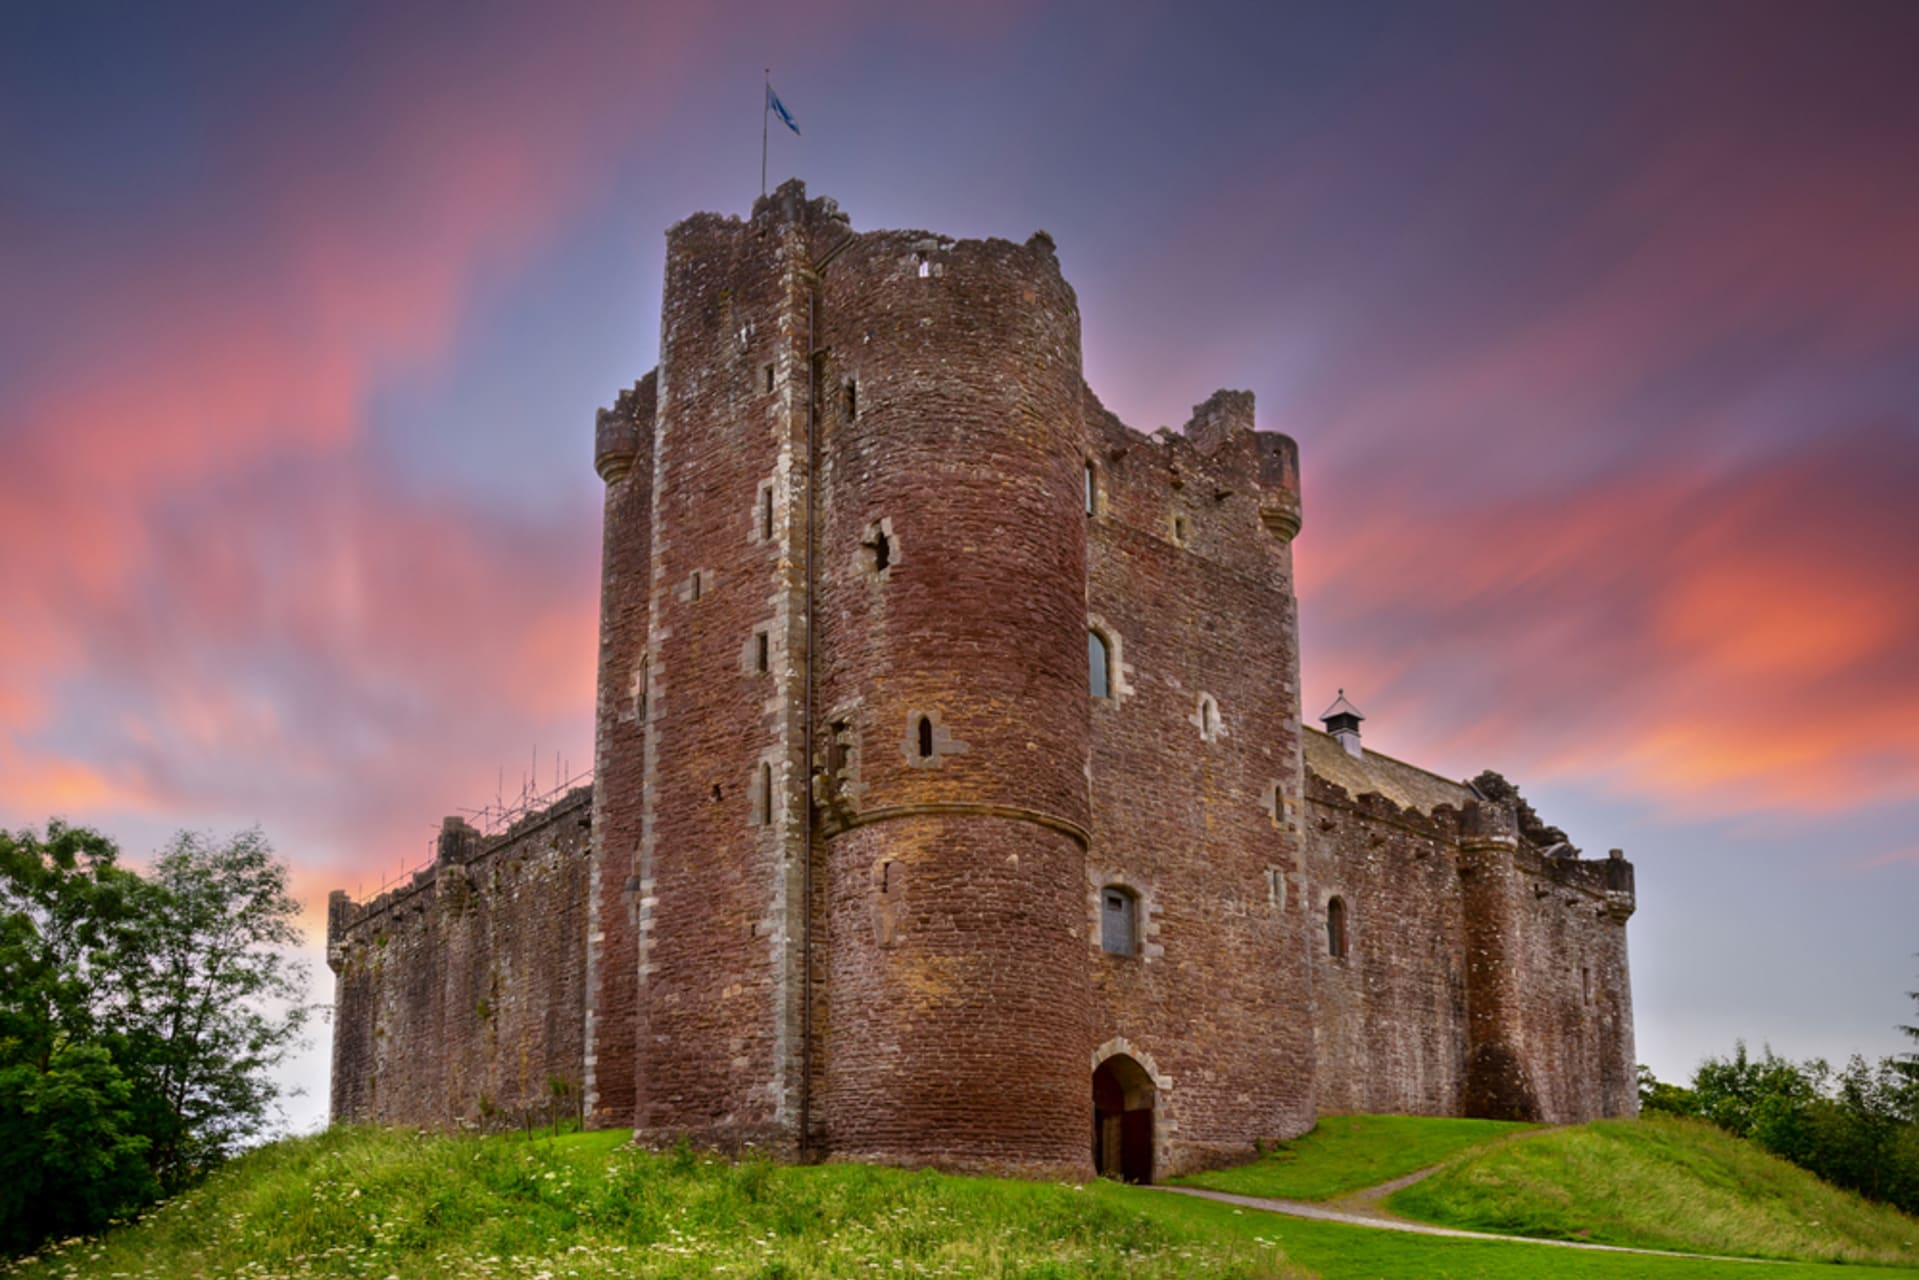 Central Scotland - Doune Castle - home to Scotland's rulers, fictional lairds and coconuts!